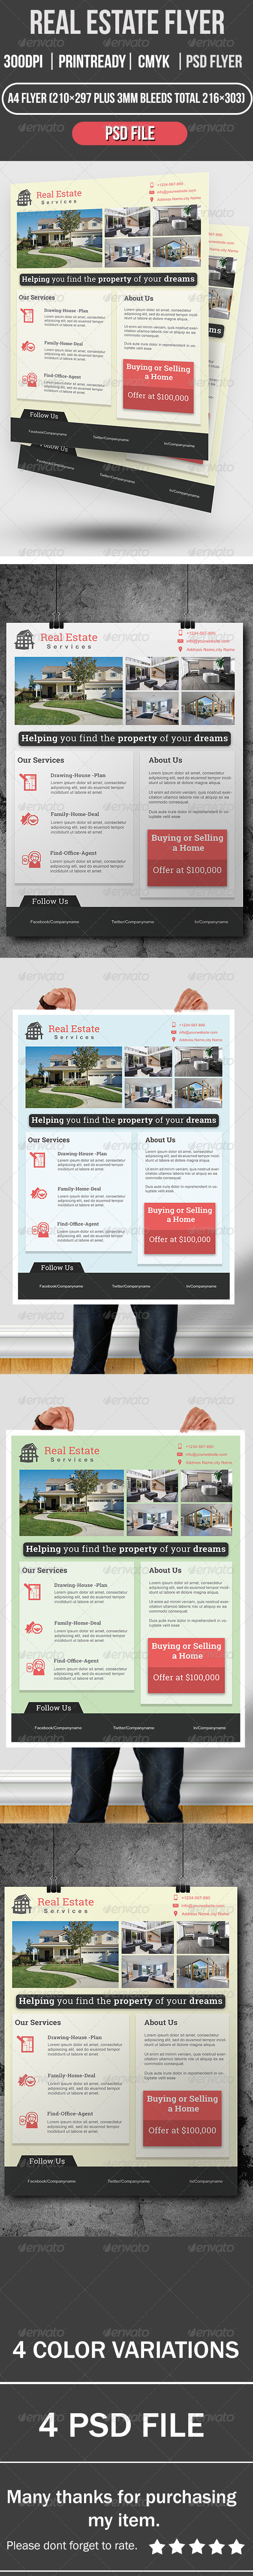 GraphicRiver Real Estate Flyer 8292776